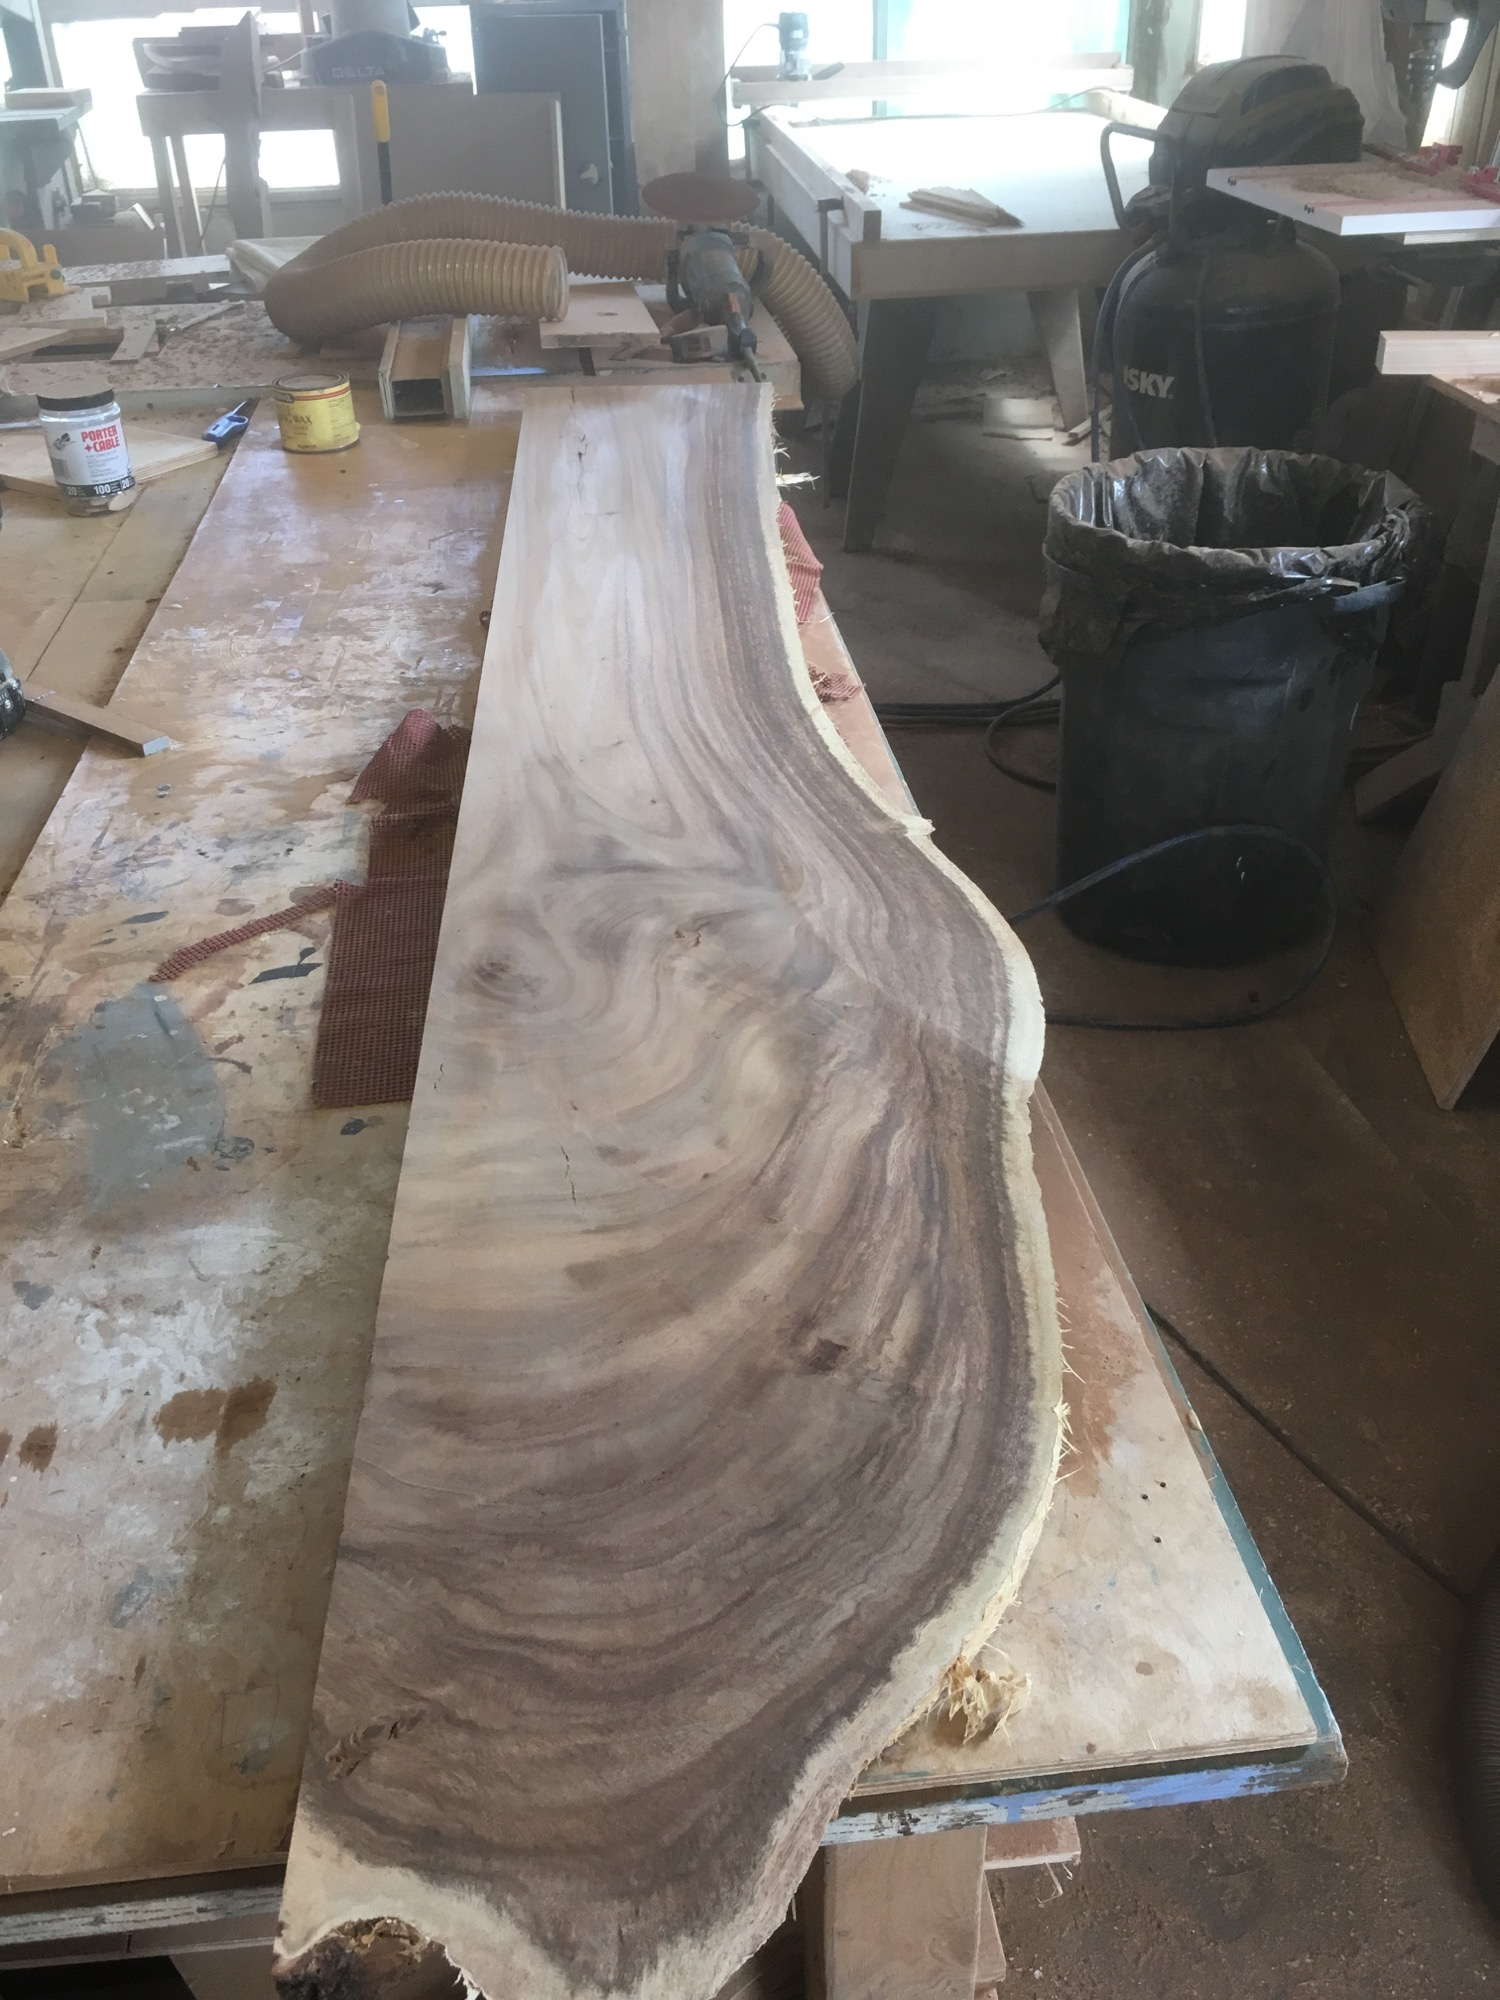 And after a little sanding... so flat!